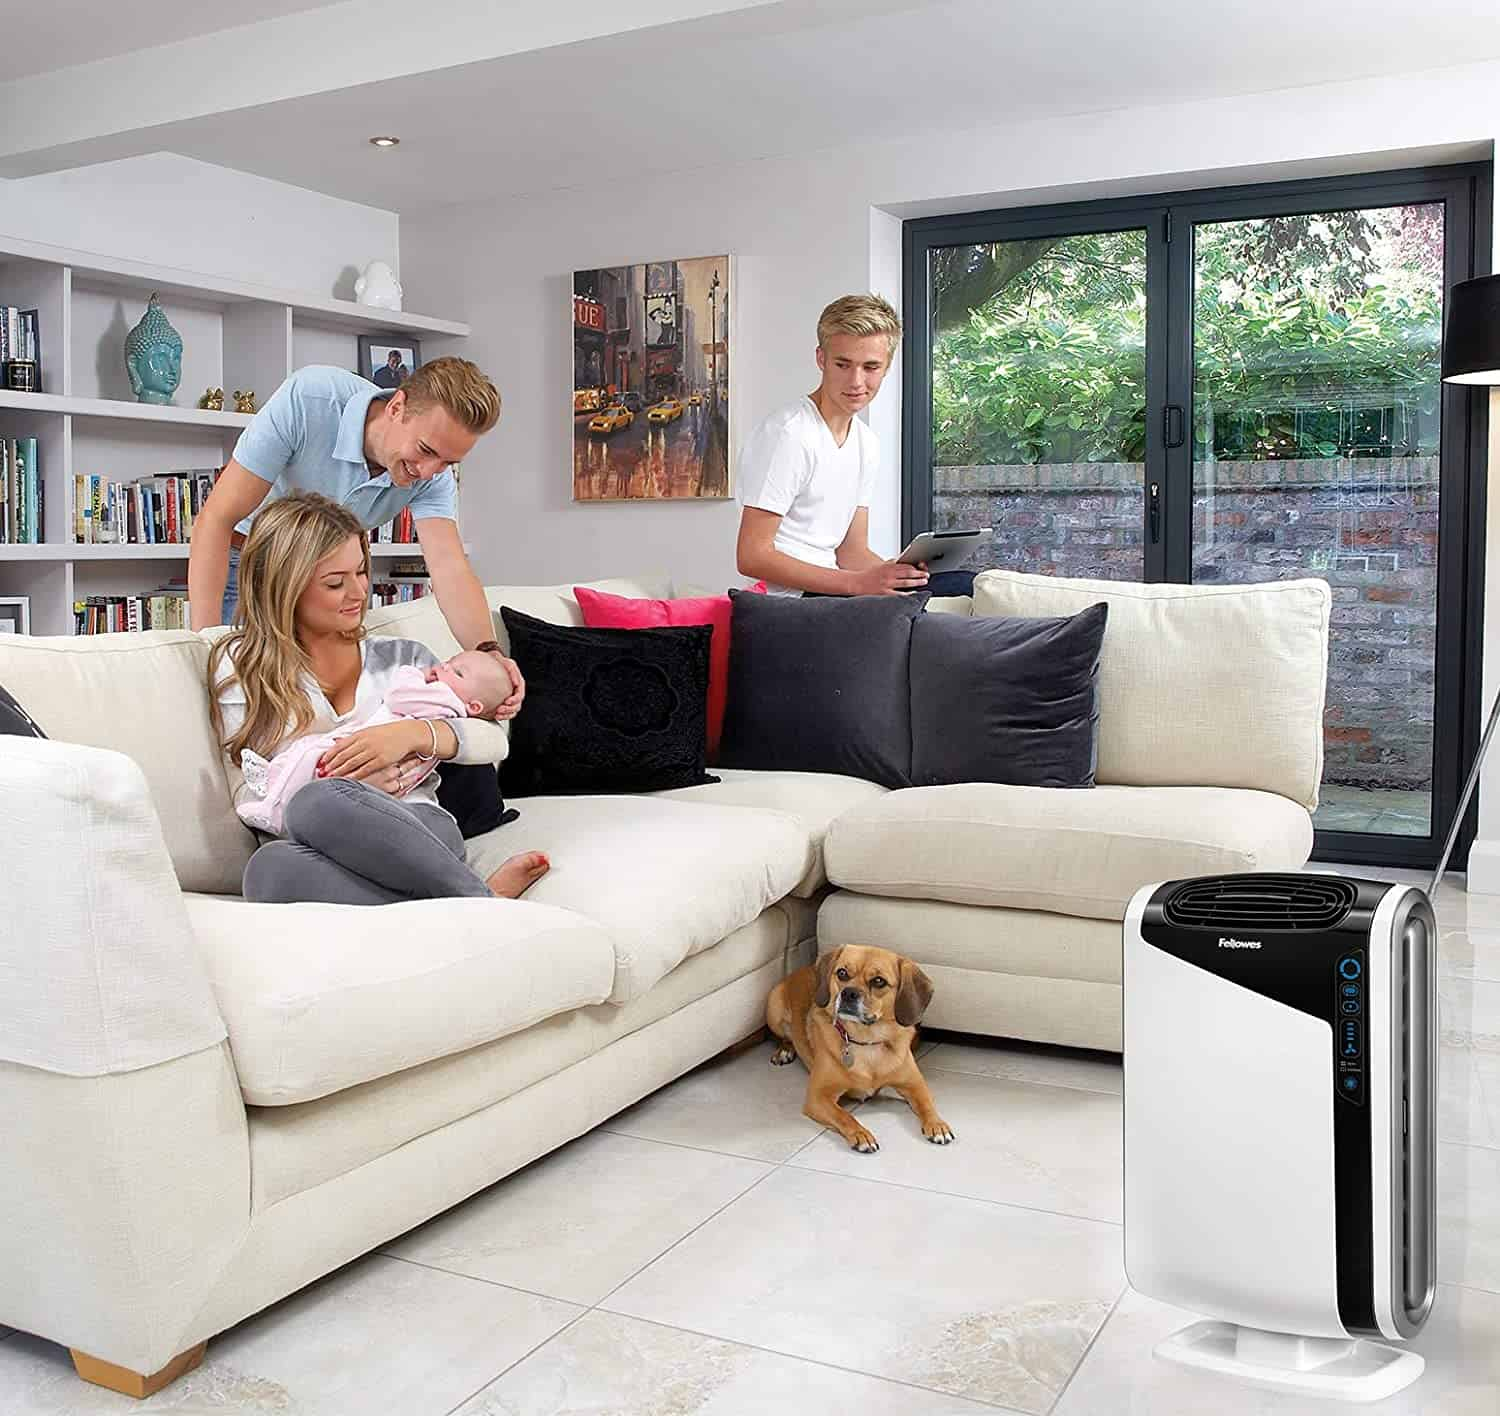 Top 8 Best Air Purifiers For Basements Reviewed